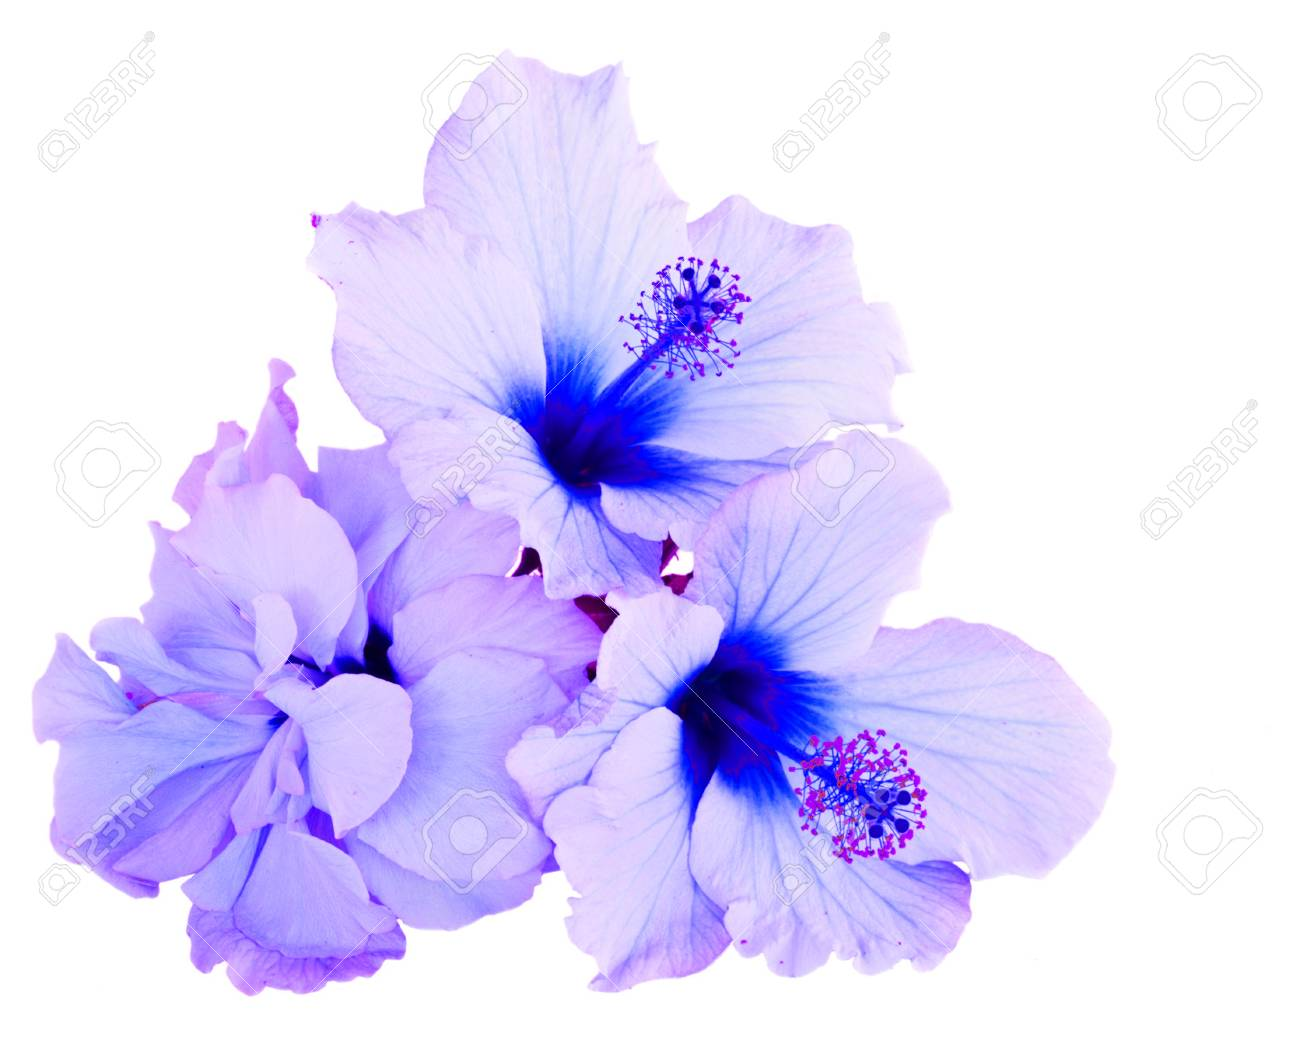 Tropical Flower Pile Of Blue Hibiscus Flowers Isolated On White